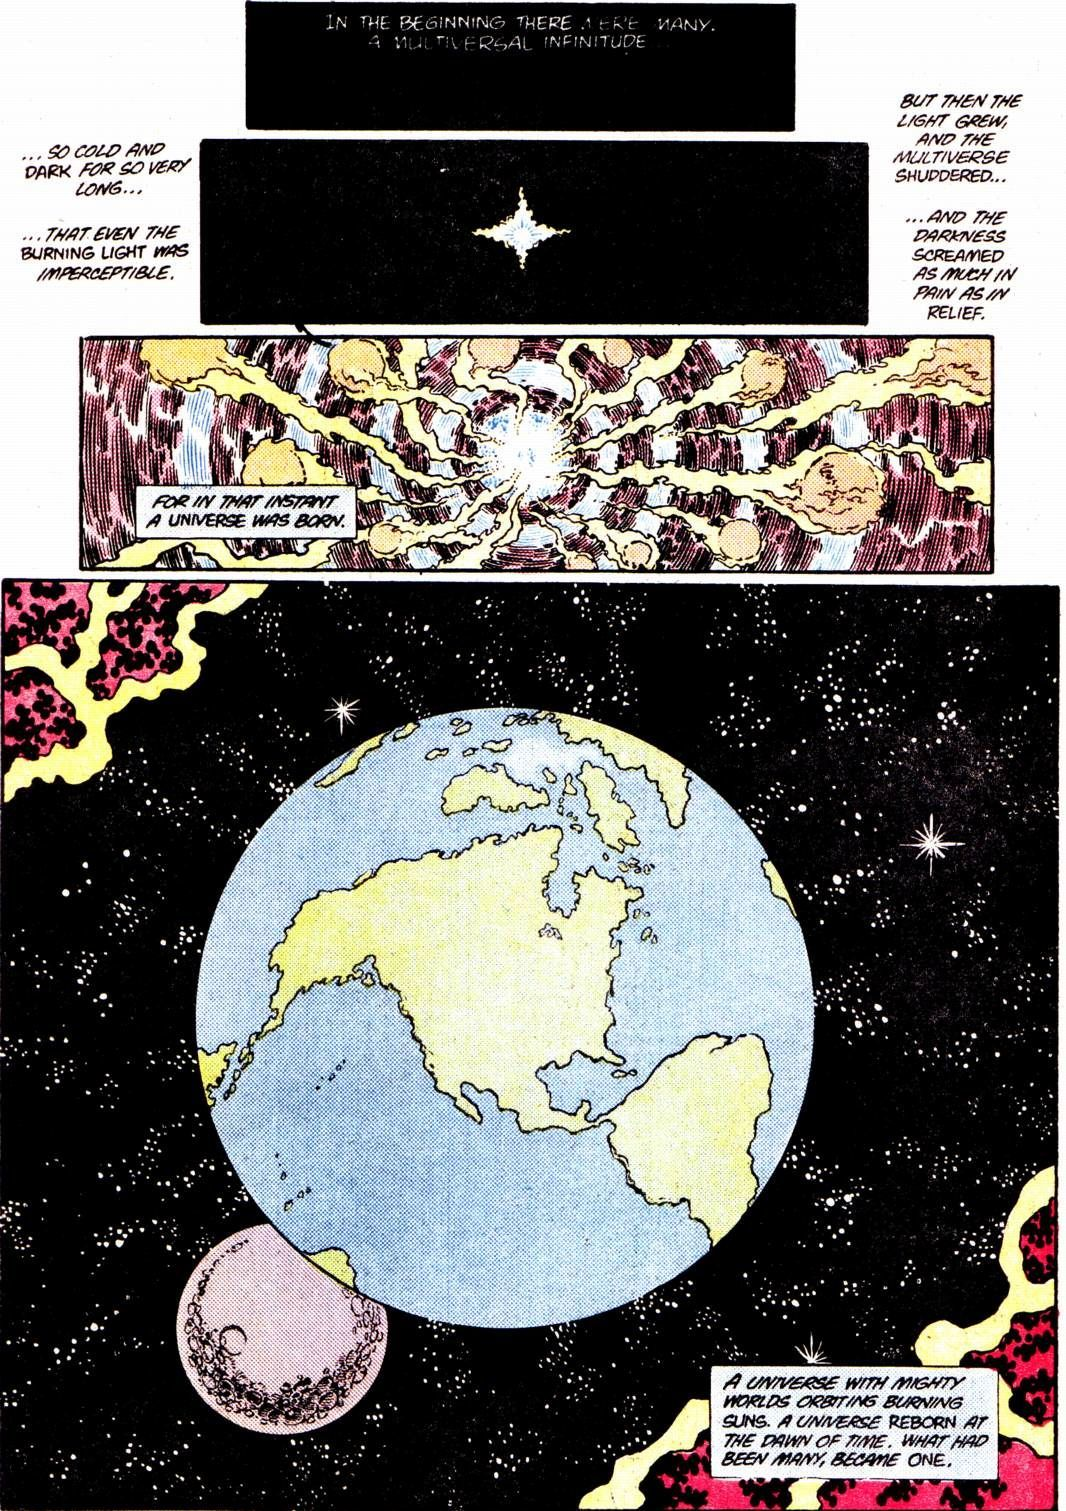 Crisis on Infinite Earths #11 (Written by Marv Wolfman, Art by George Perez and Jerry Ordway)